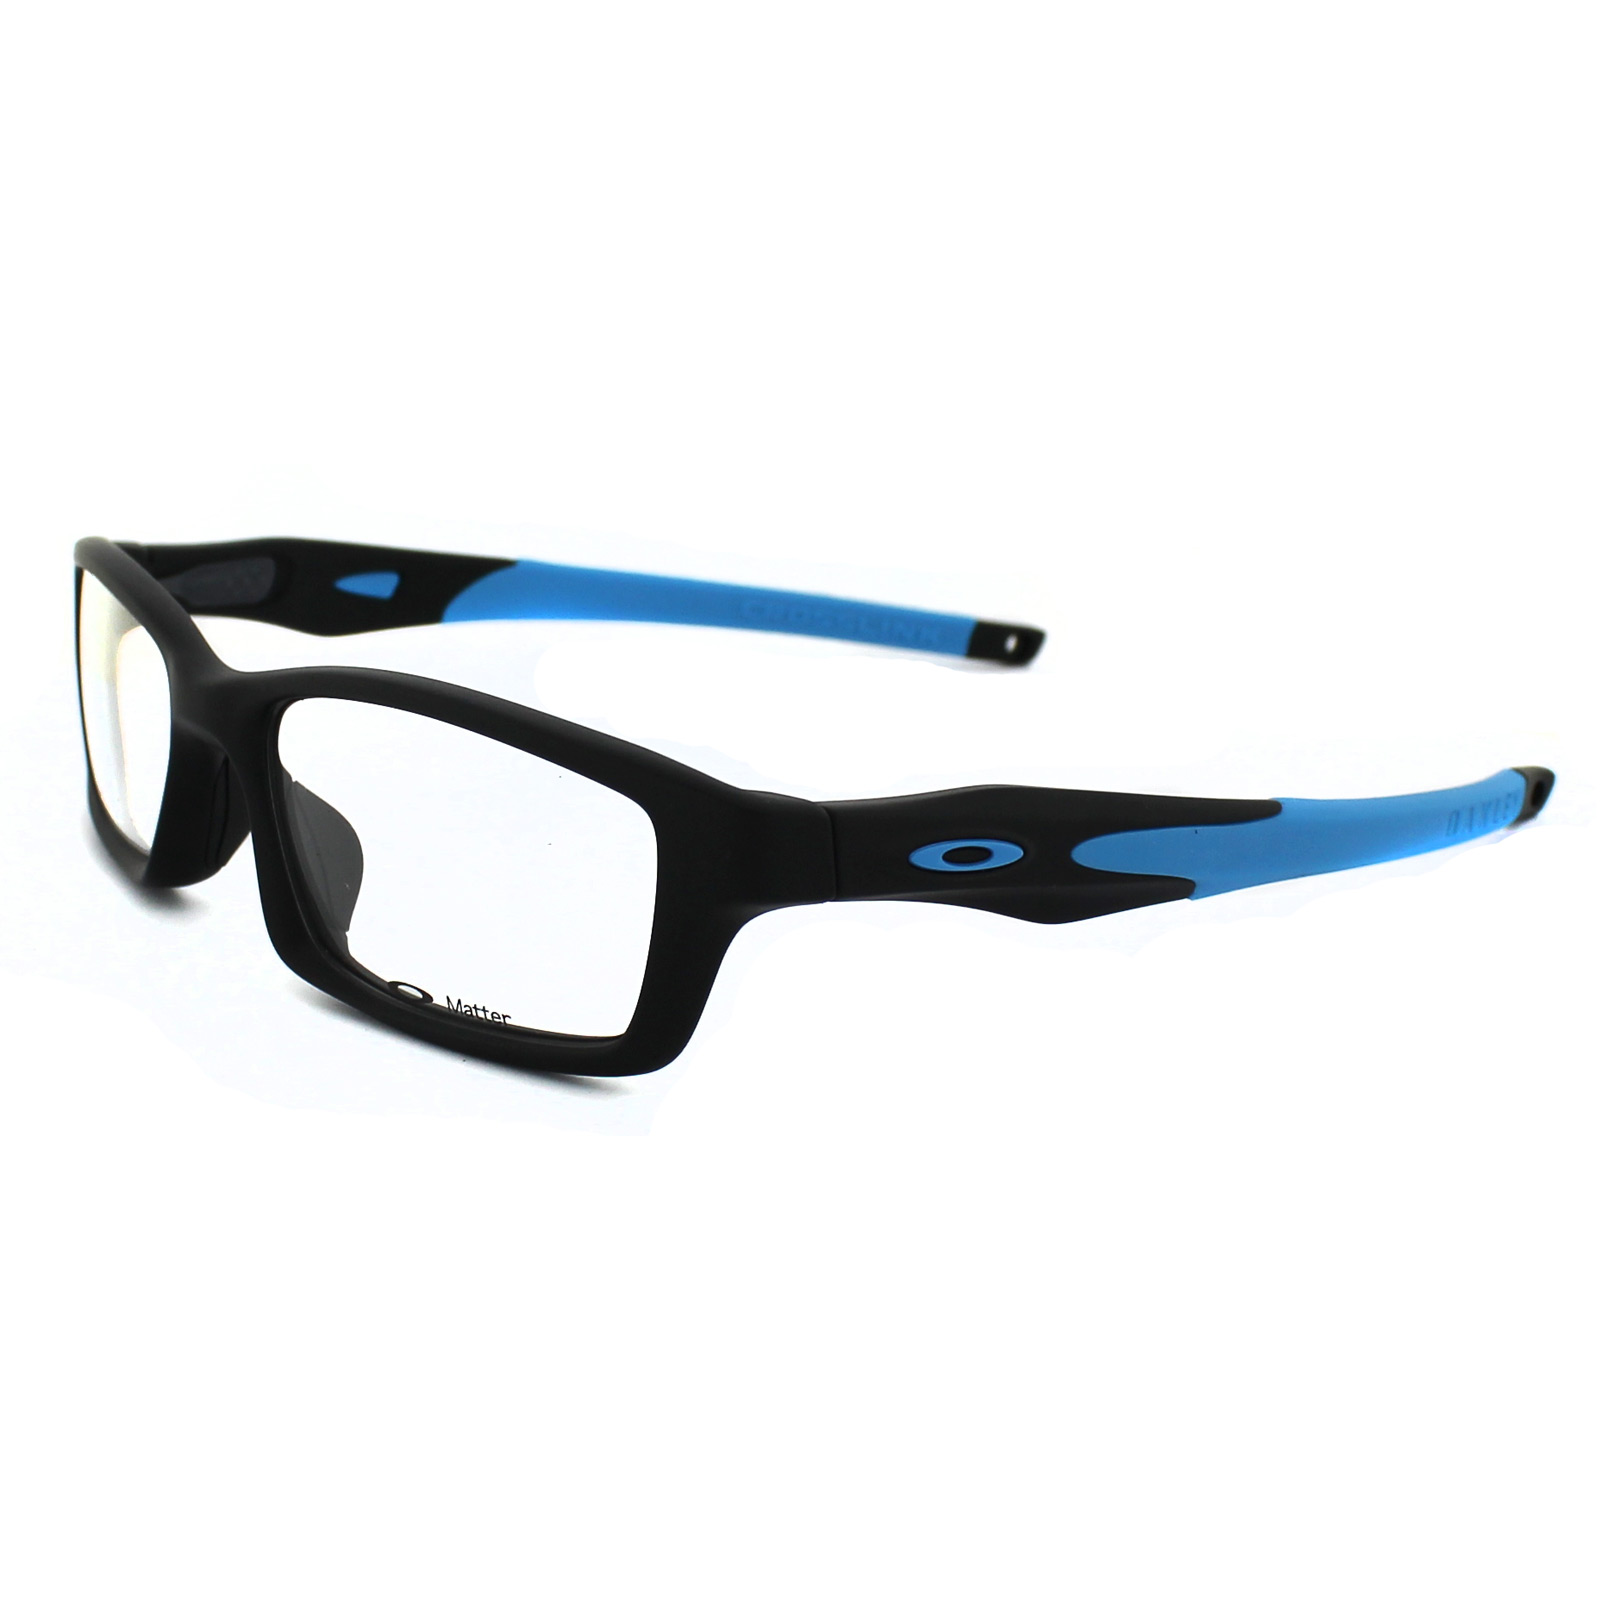 Cheap Oakley Crosslink Glasses Frames Discounted Sunglasses